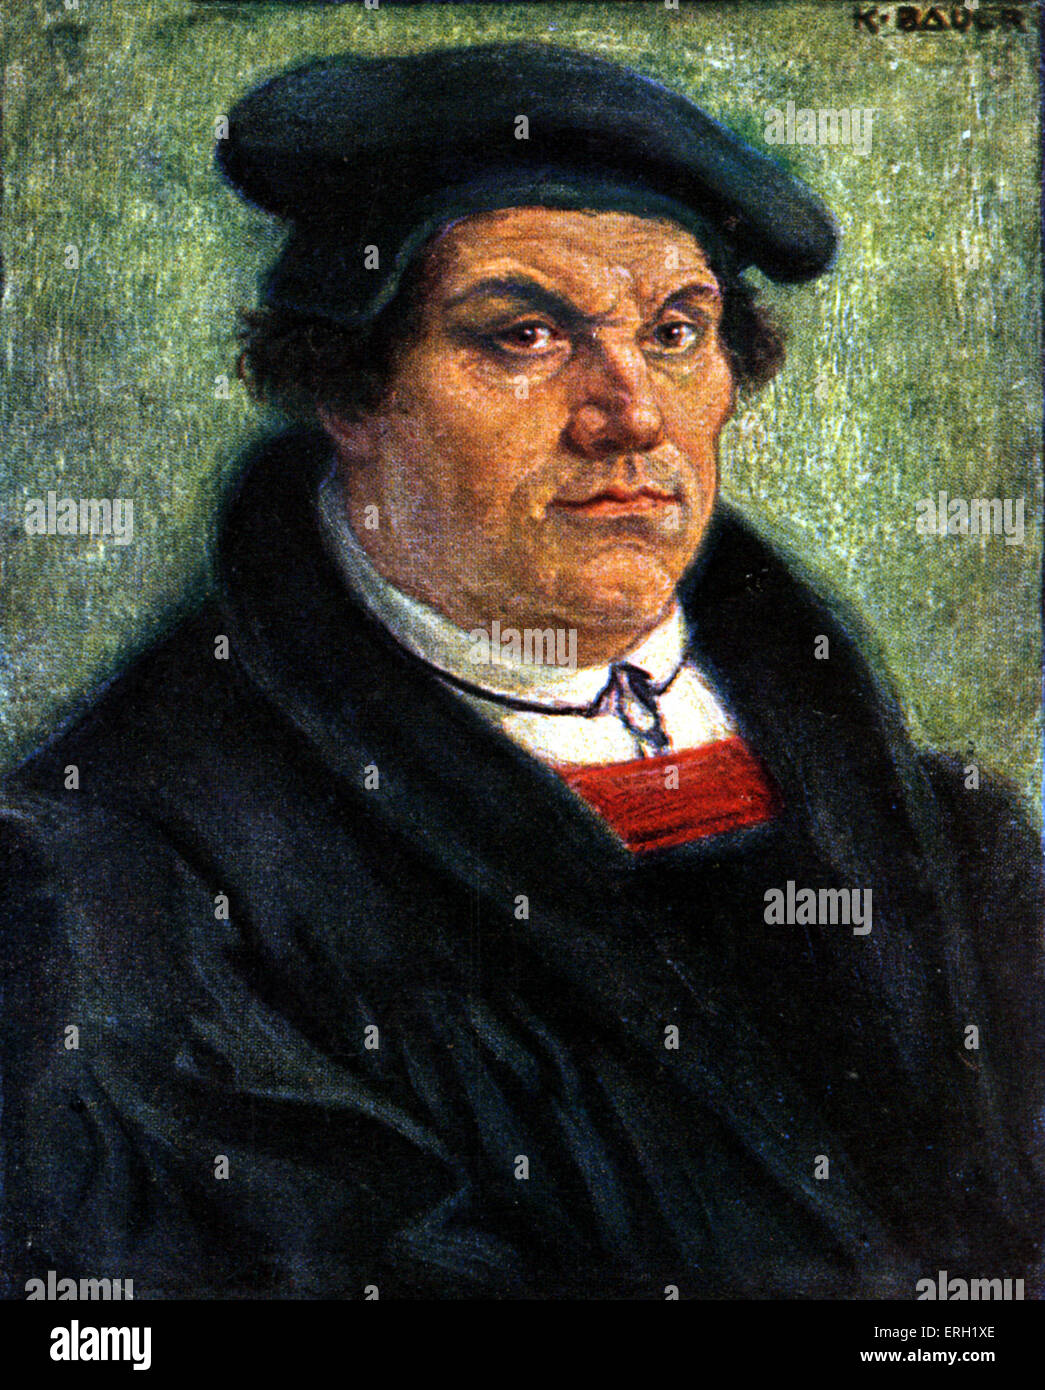 Martin Luther by Karl Bauer German reformer and amateur musician, 1483-1546. - Stock Image